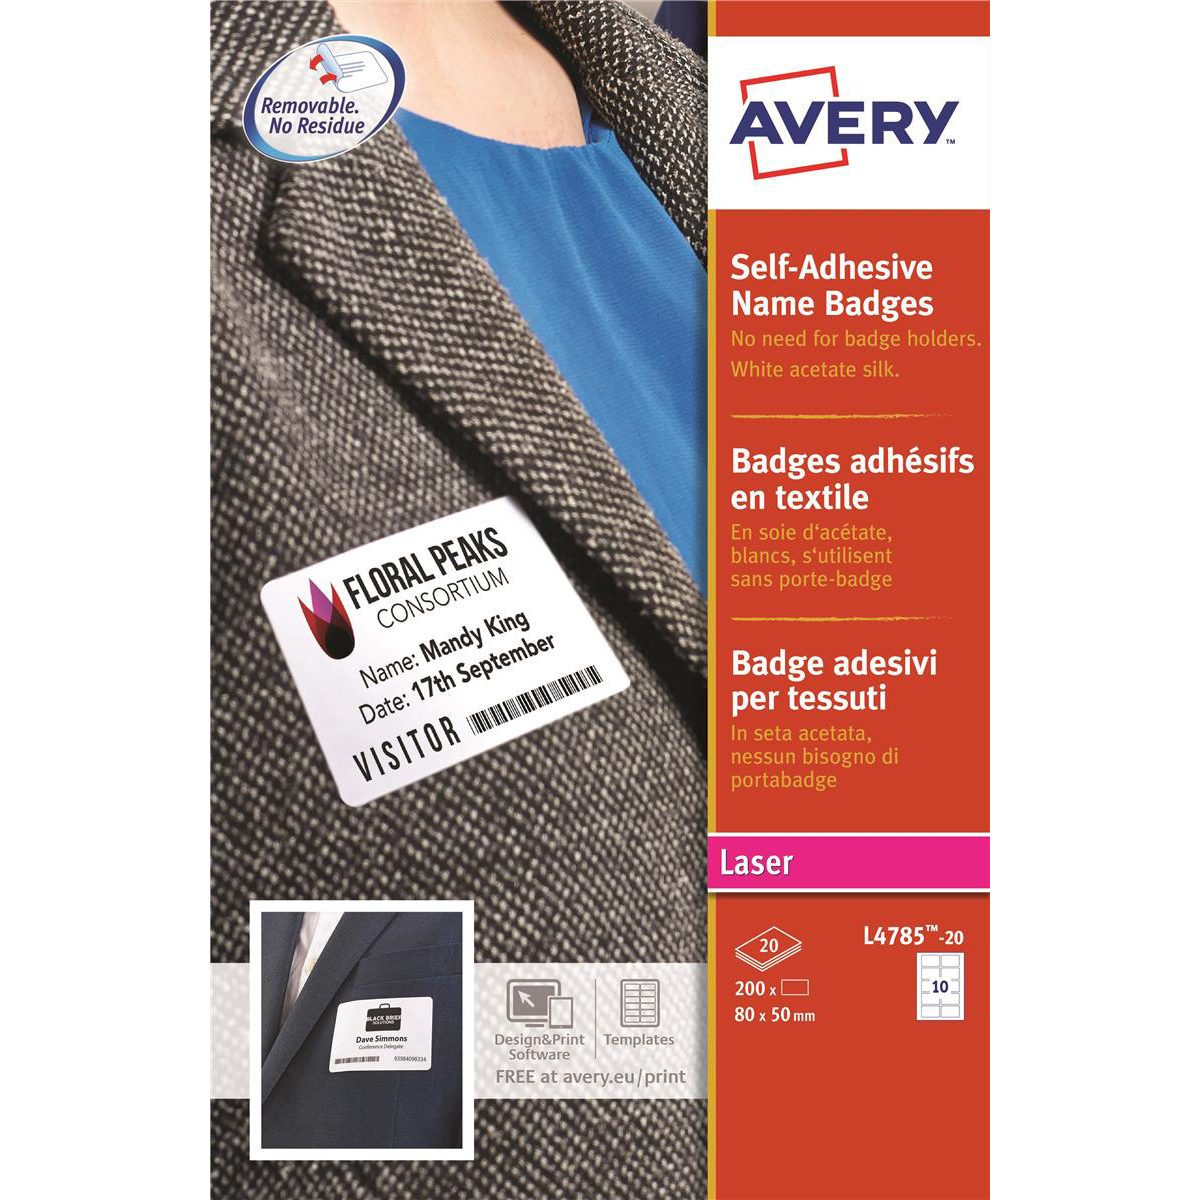 ID Badges Avery Name Badge Labels Laser Self-adhesive 80x50mm White Ref L4785-20 200 Labels